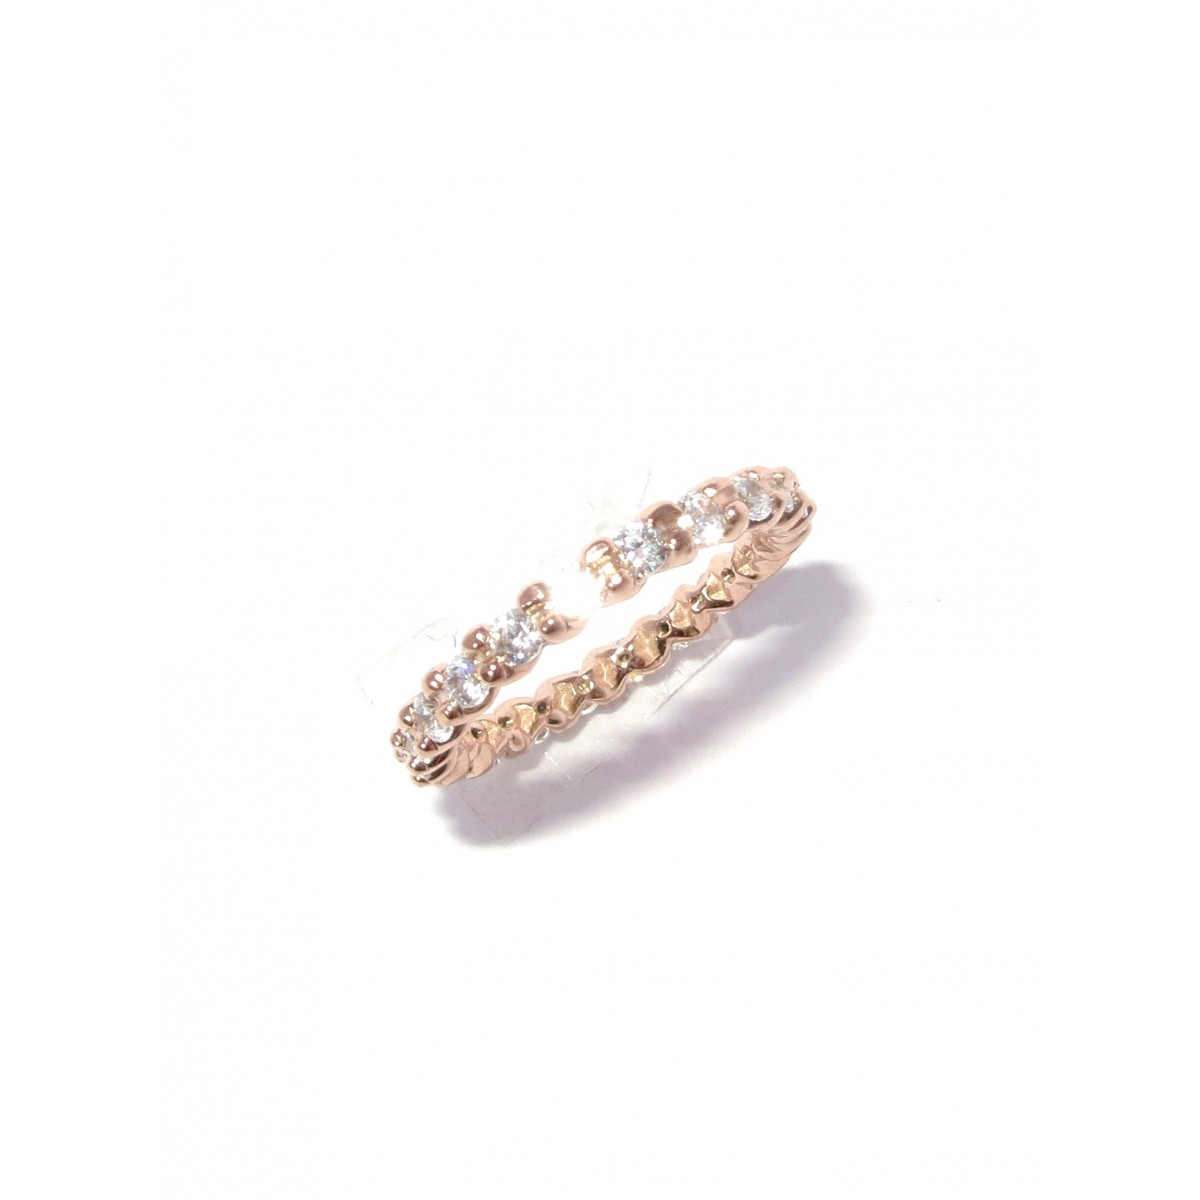 Anel Ouro Rose 18k Inteiro de Diamantes 1.00 quilate  - Sancy